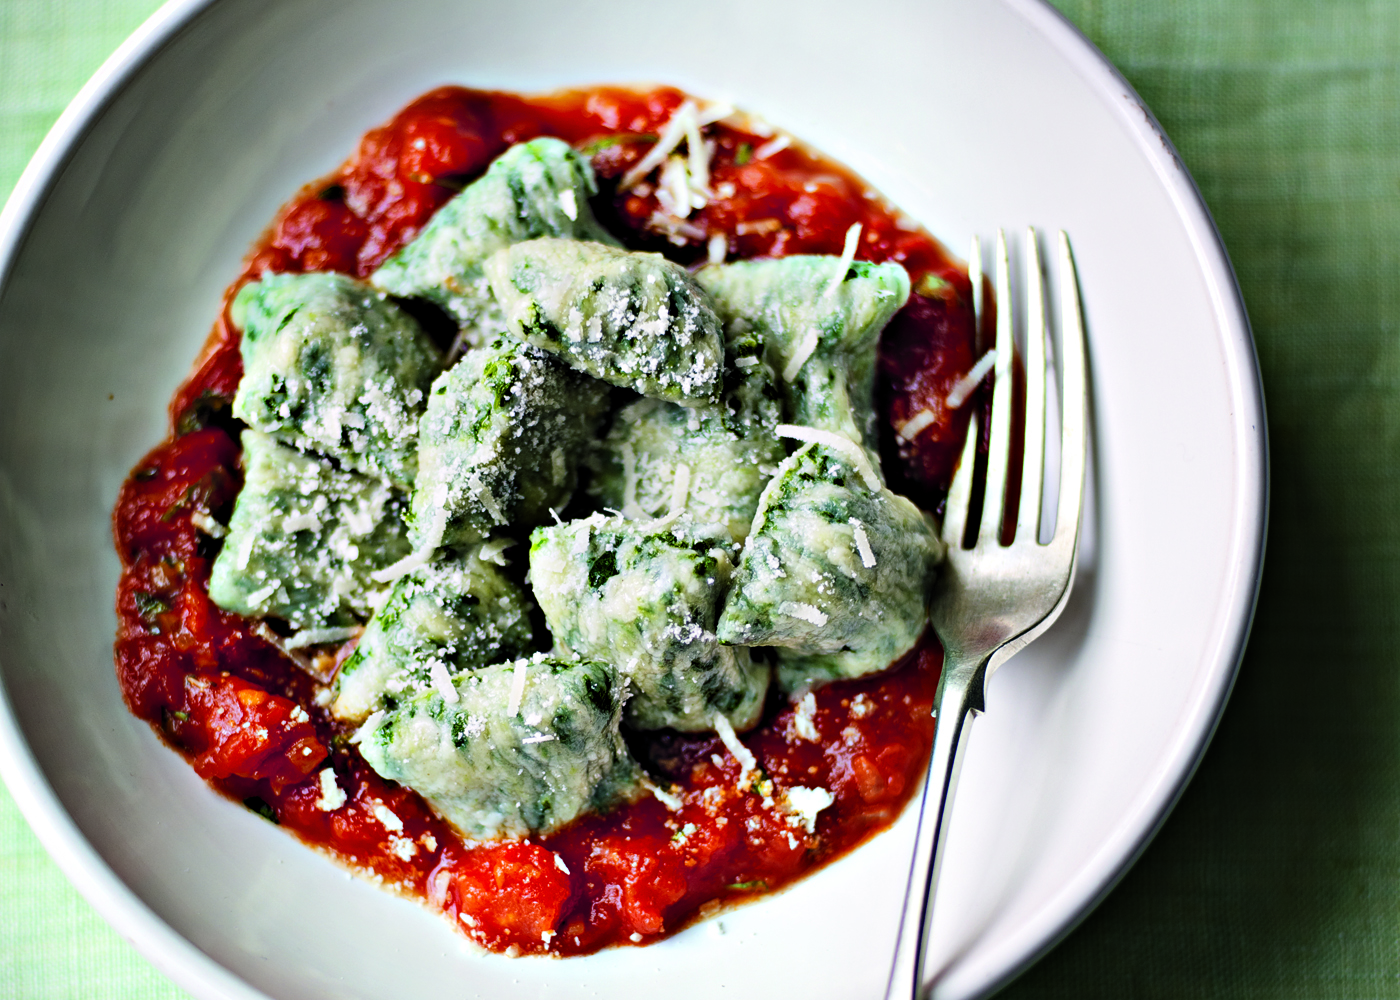 Spinach, ricotta and parmesan gnocchi with tomato sauce | FOODWISE